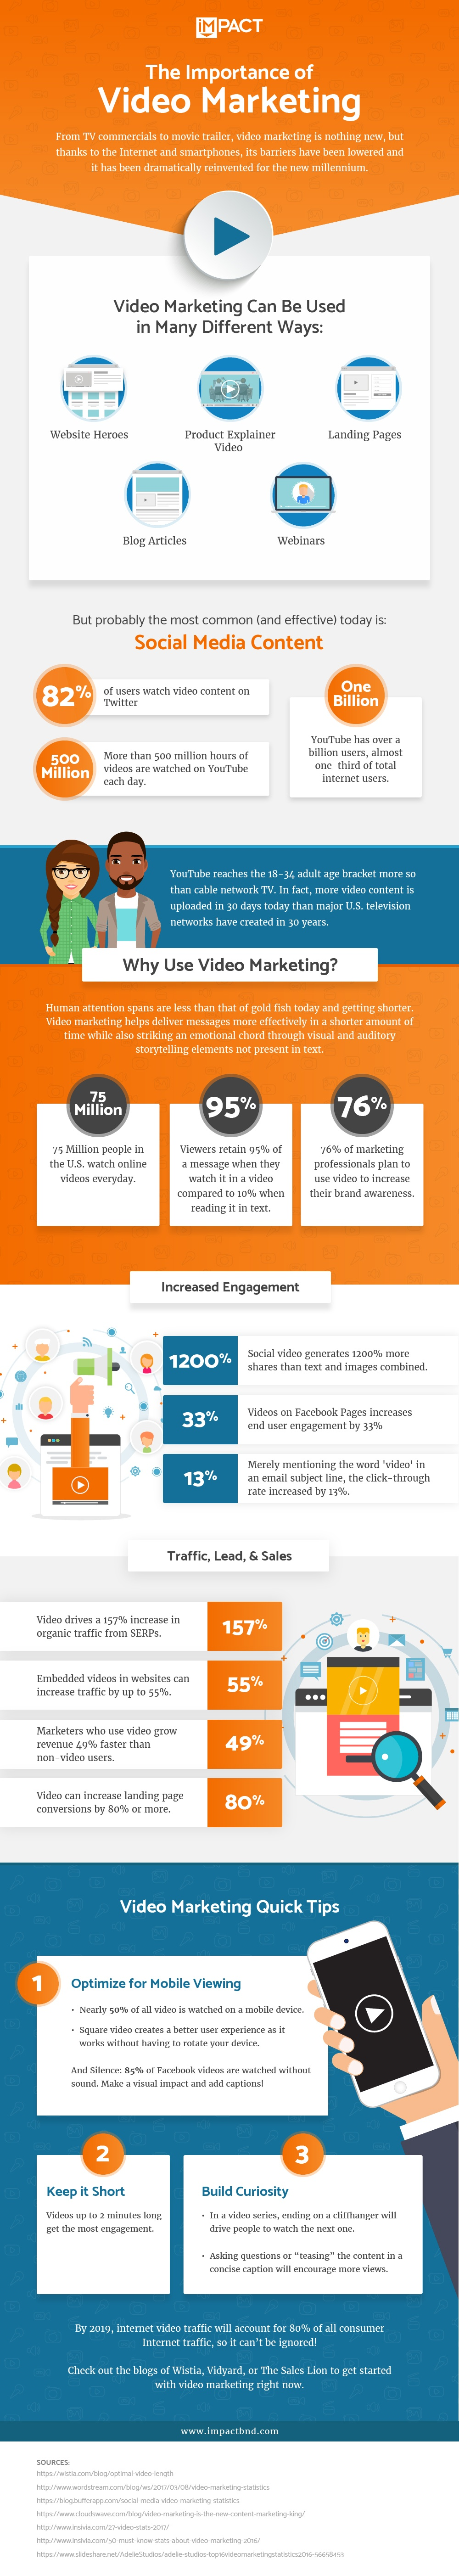 Video-Marketing-Infographic.jpg